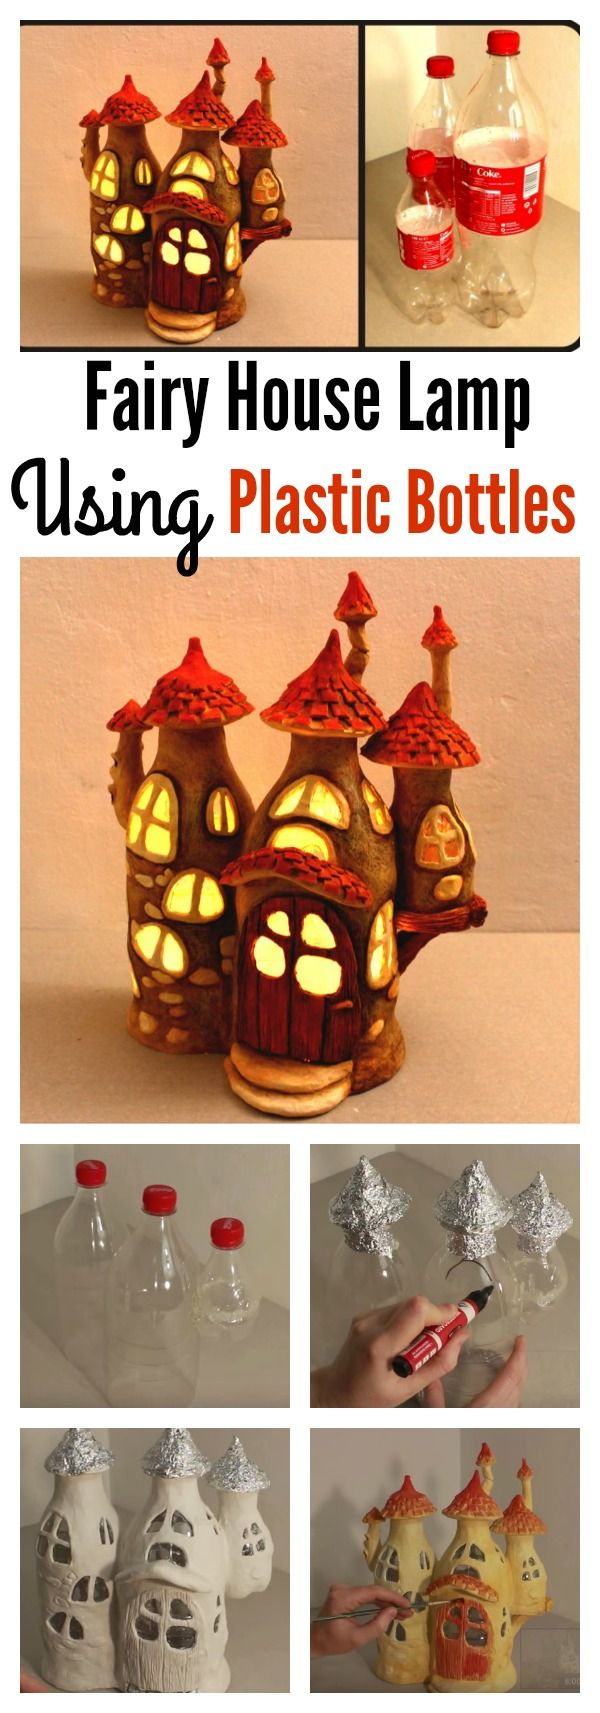 Fairy Garden Supplies At Pat Catans - Diy fairy house lamp using plastic bottles